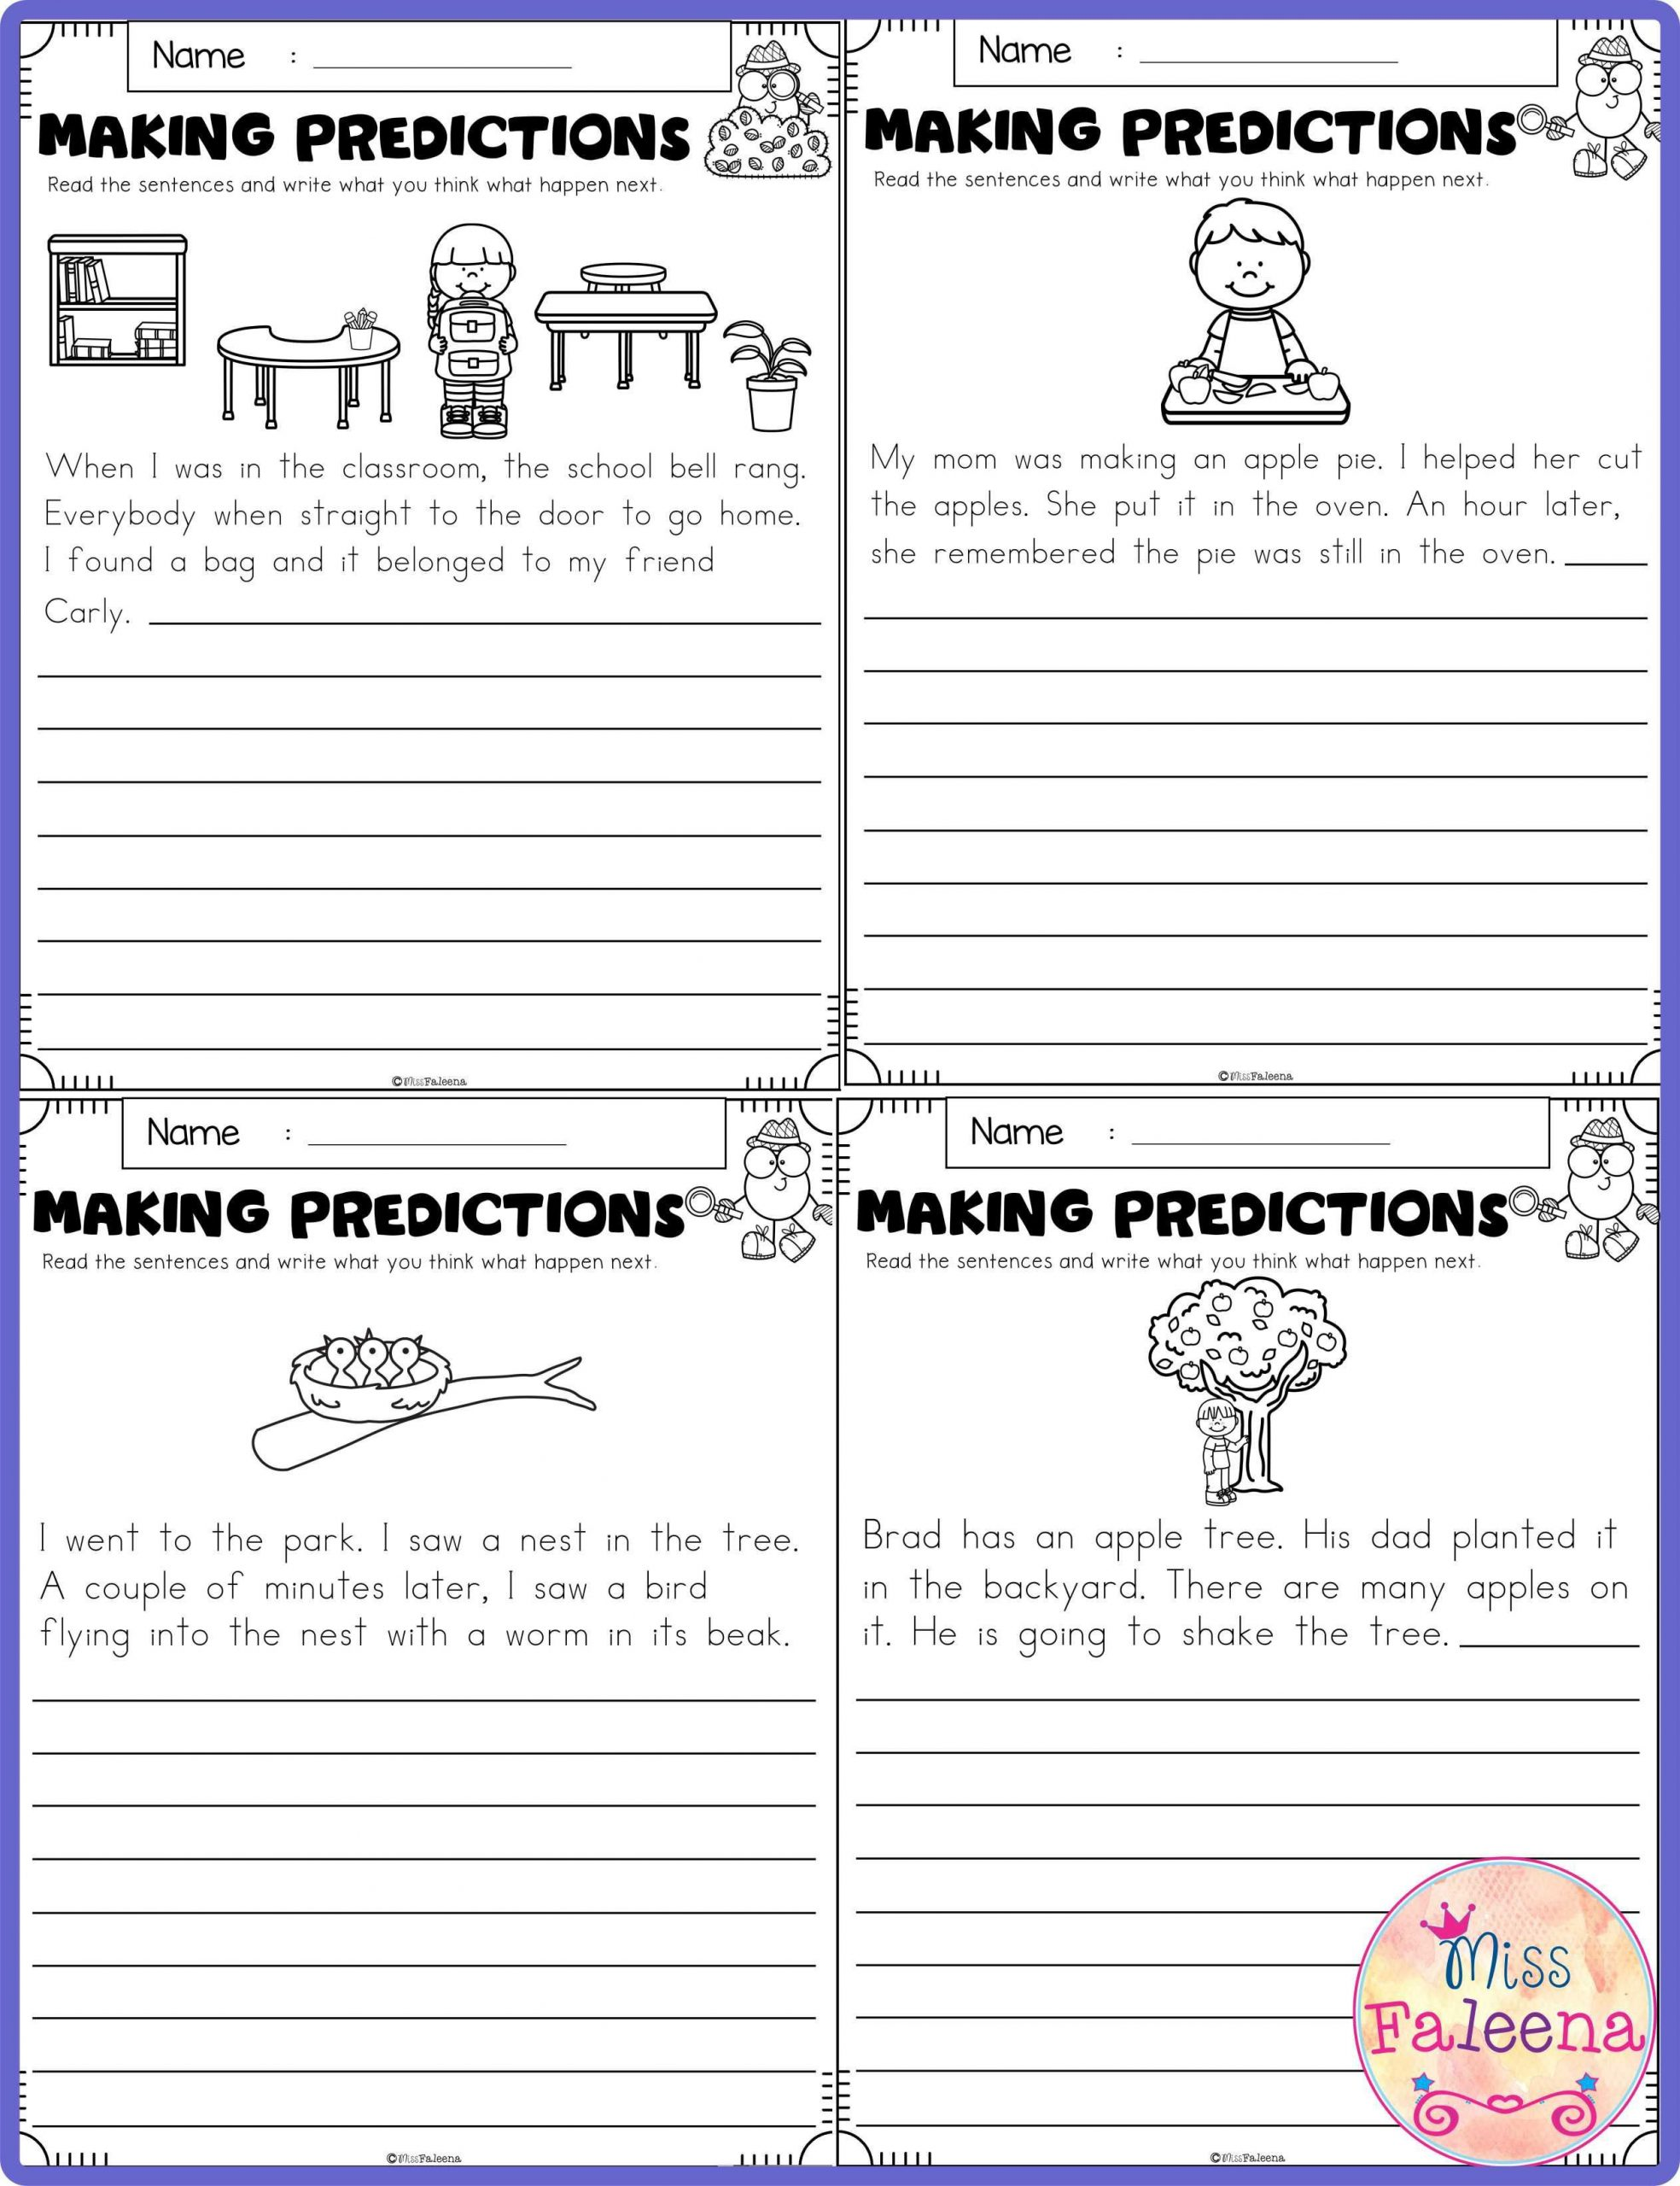 Making Predictions Worksheet 2nd Grade September Making Predictions In 2020 with Images